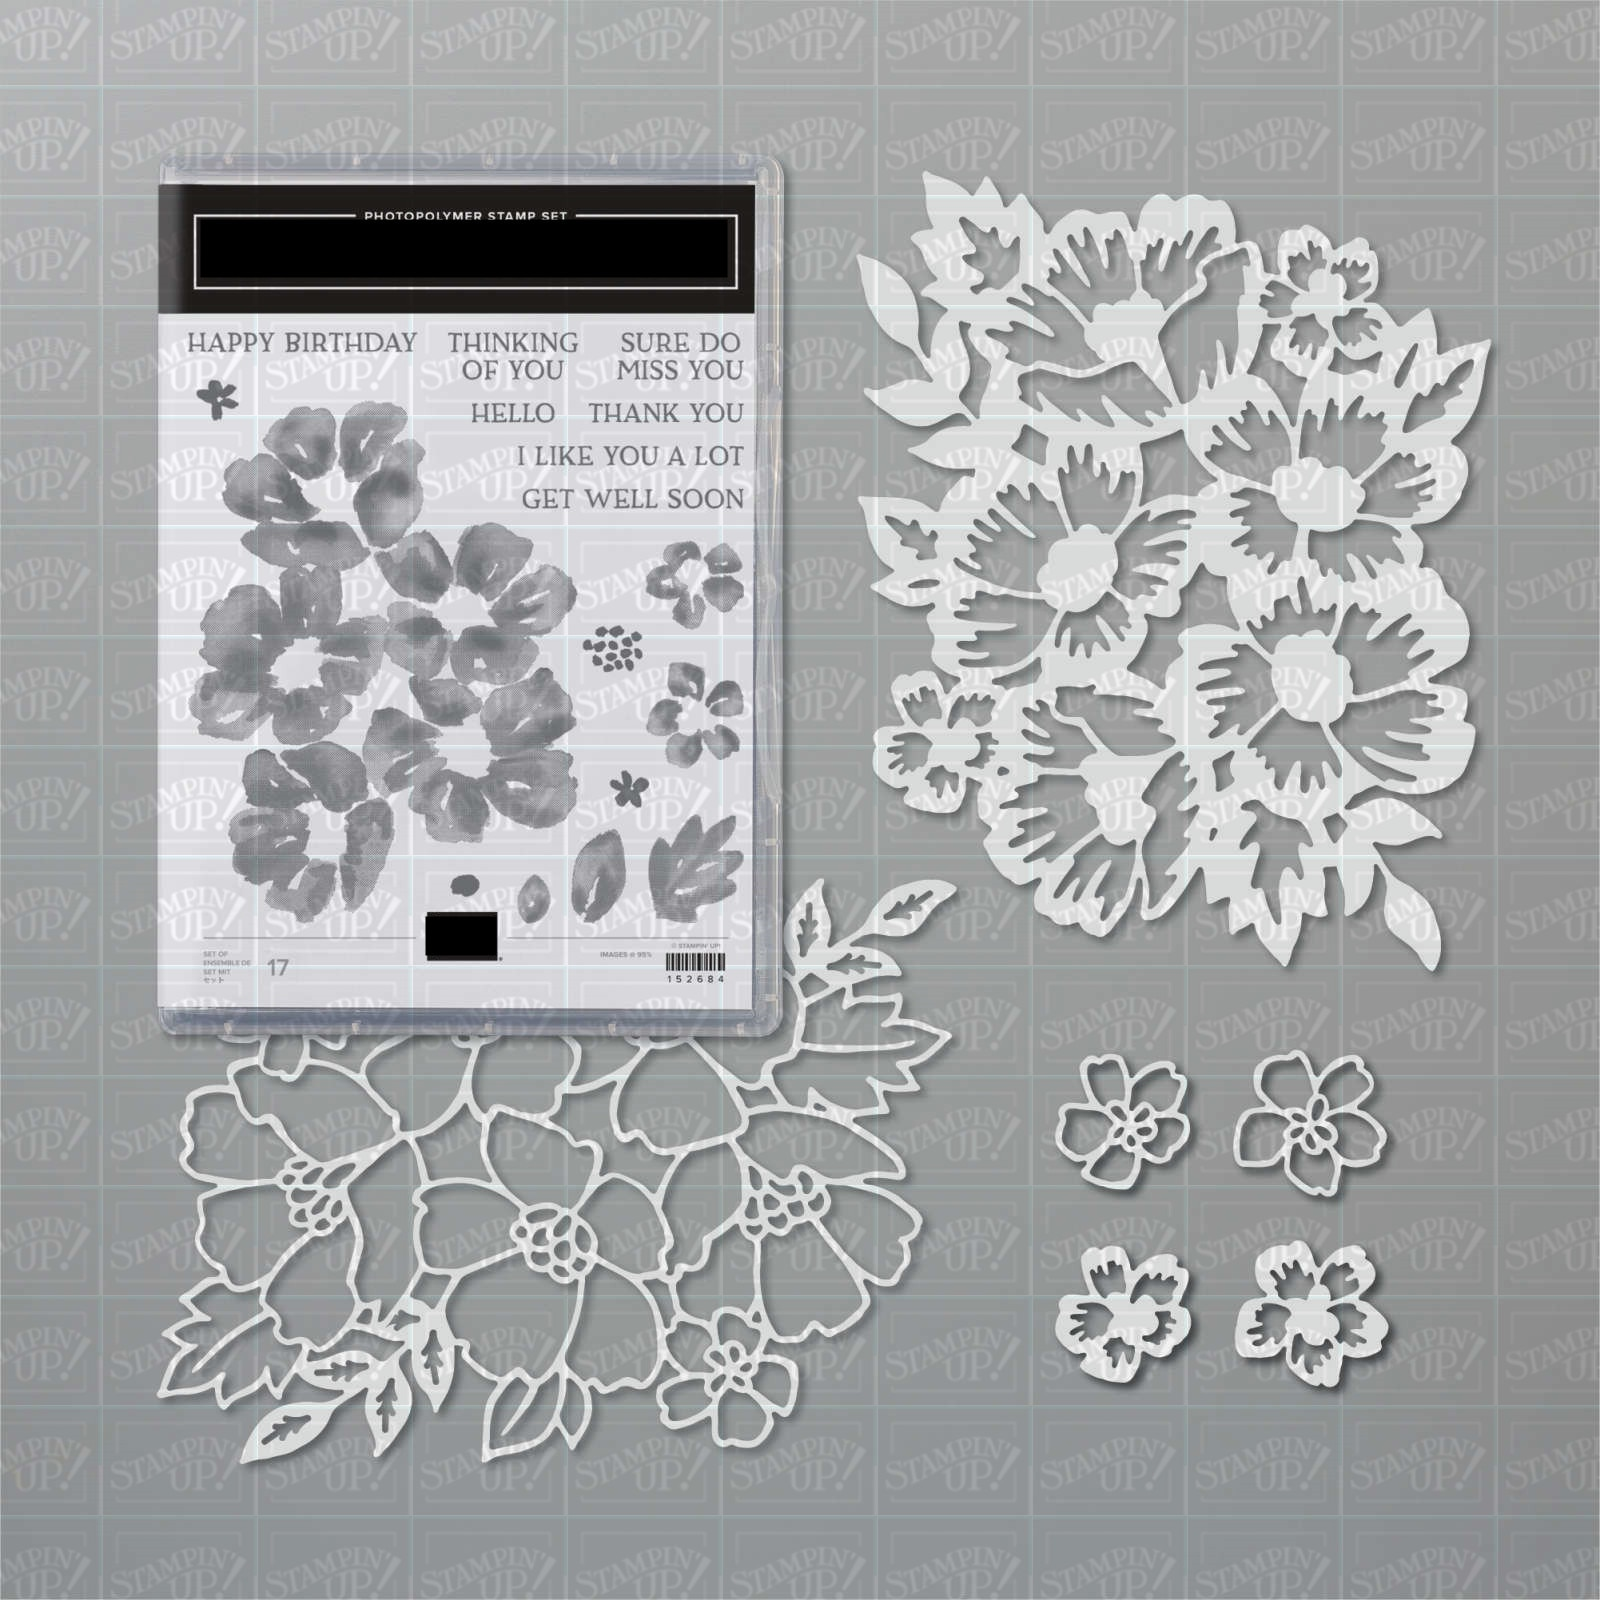 Peach Metal Cutting Dies and Stamps for DIY Scrapbooking Album Paper Cards Decorative Crafts Embossing Die Cuts  - buy with discount